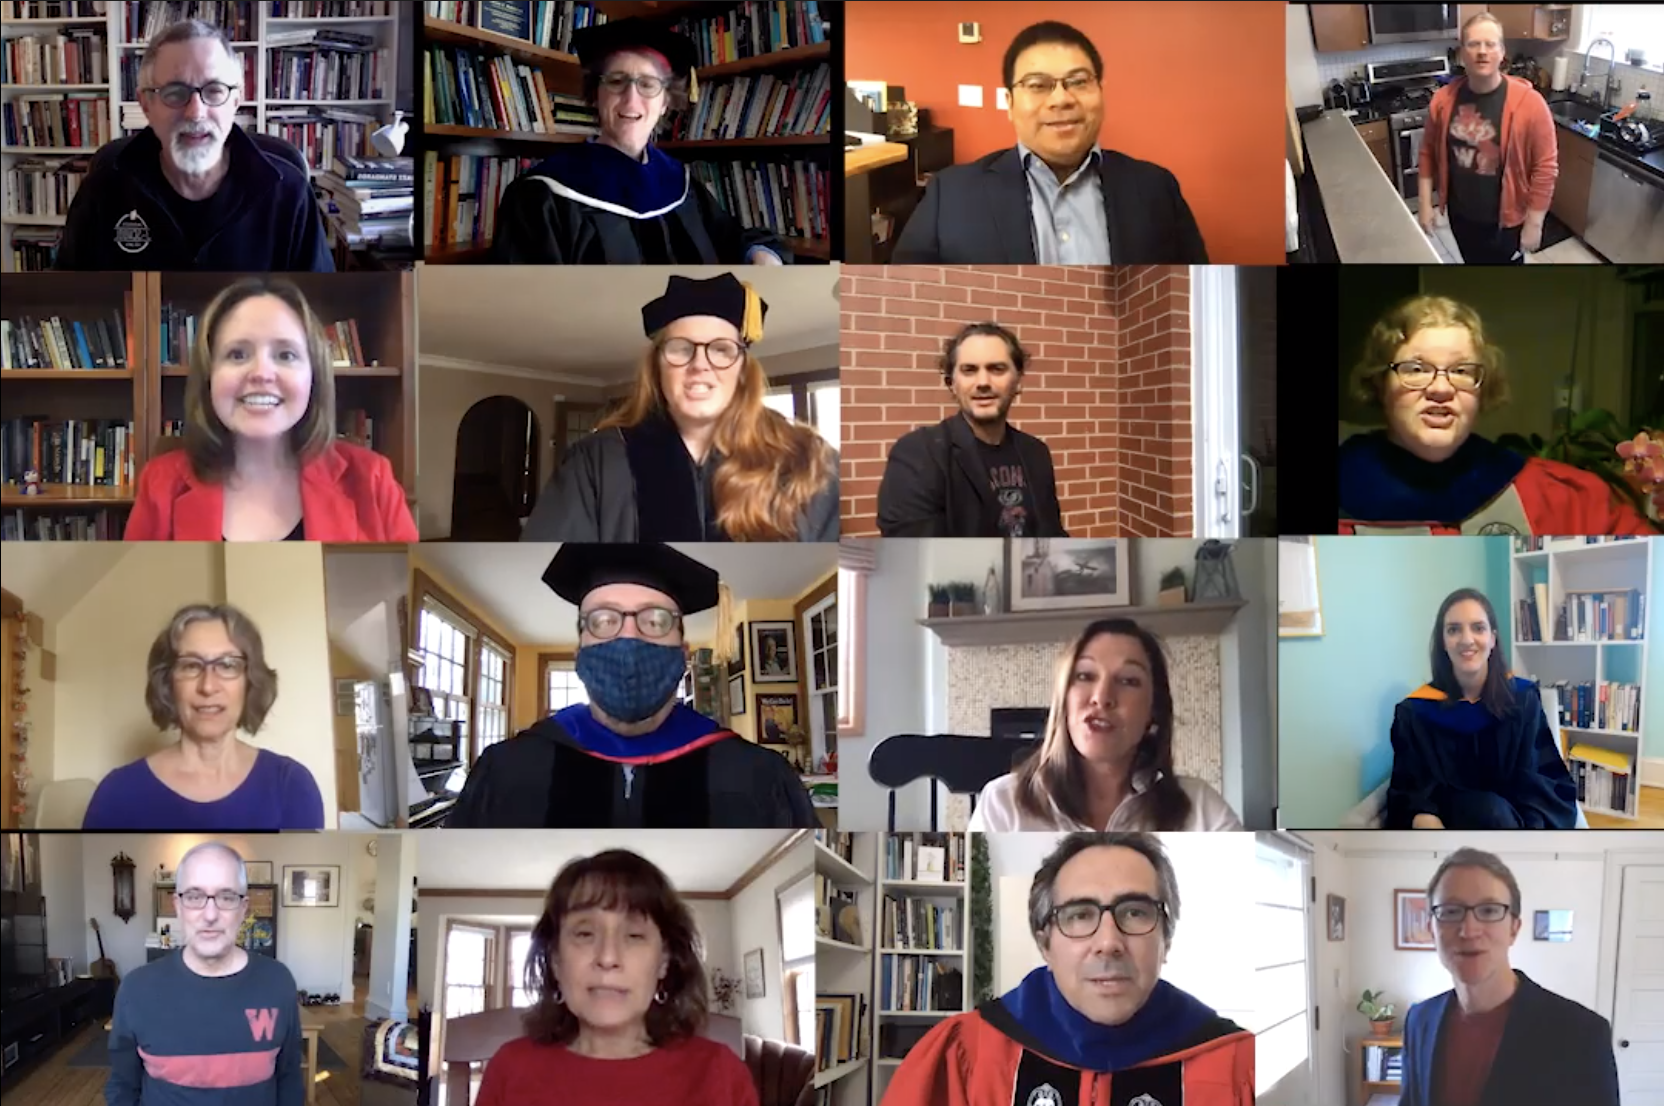 Screen shot from video showing multiple faculty and instructors in videos recorded at home.